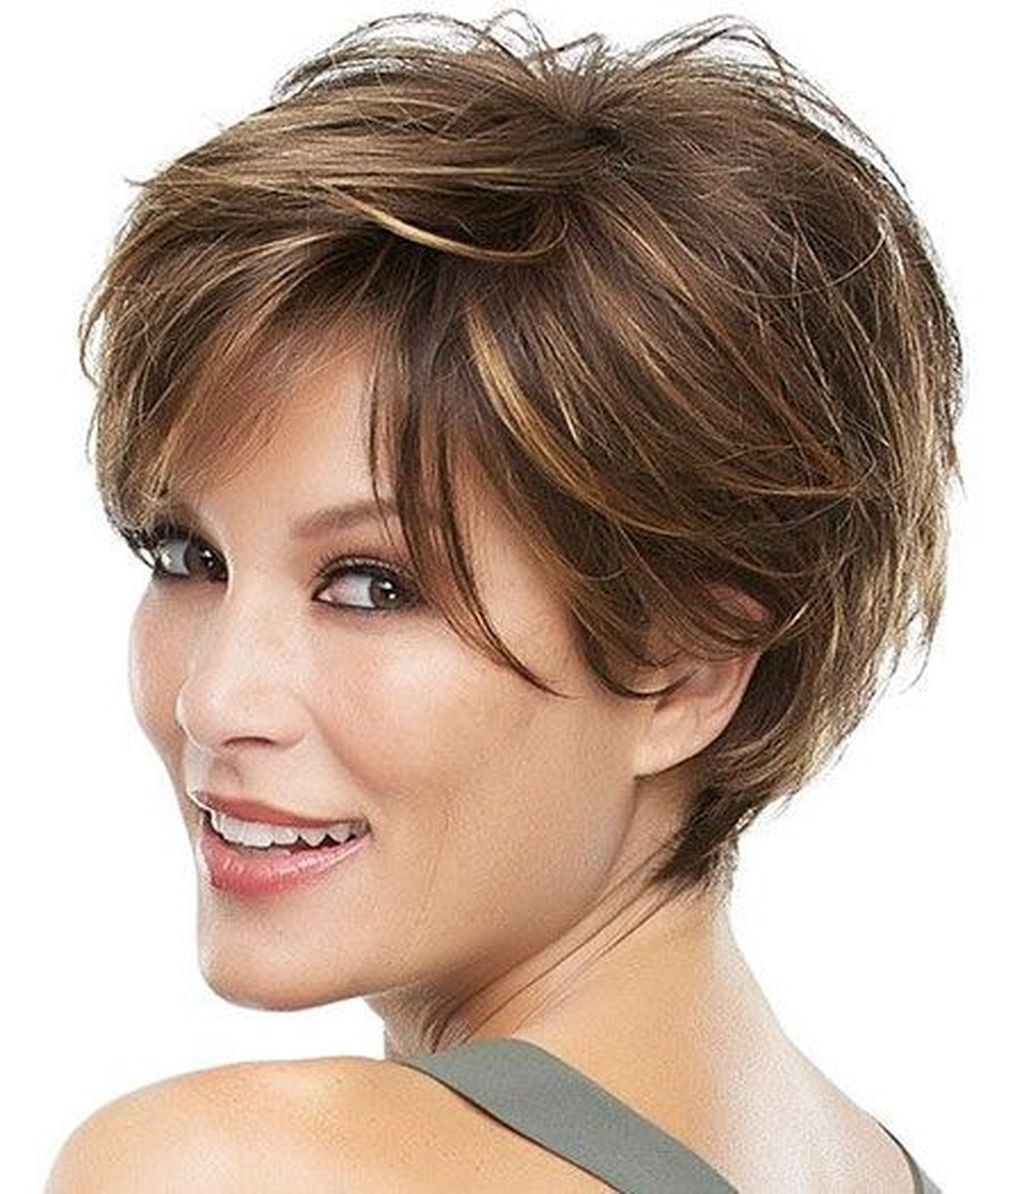 35 stylish short hairstyles for women with thin hair in